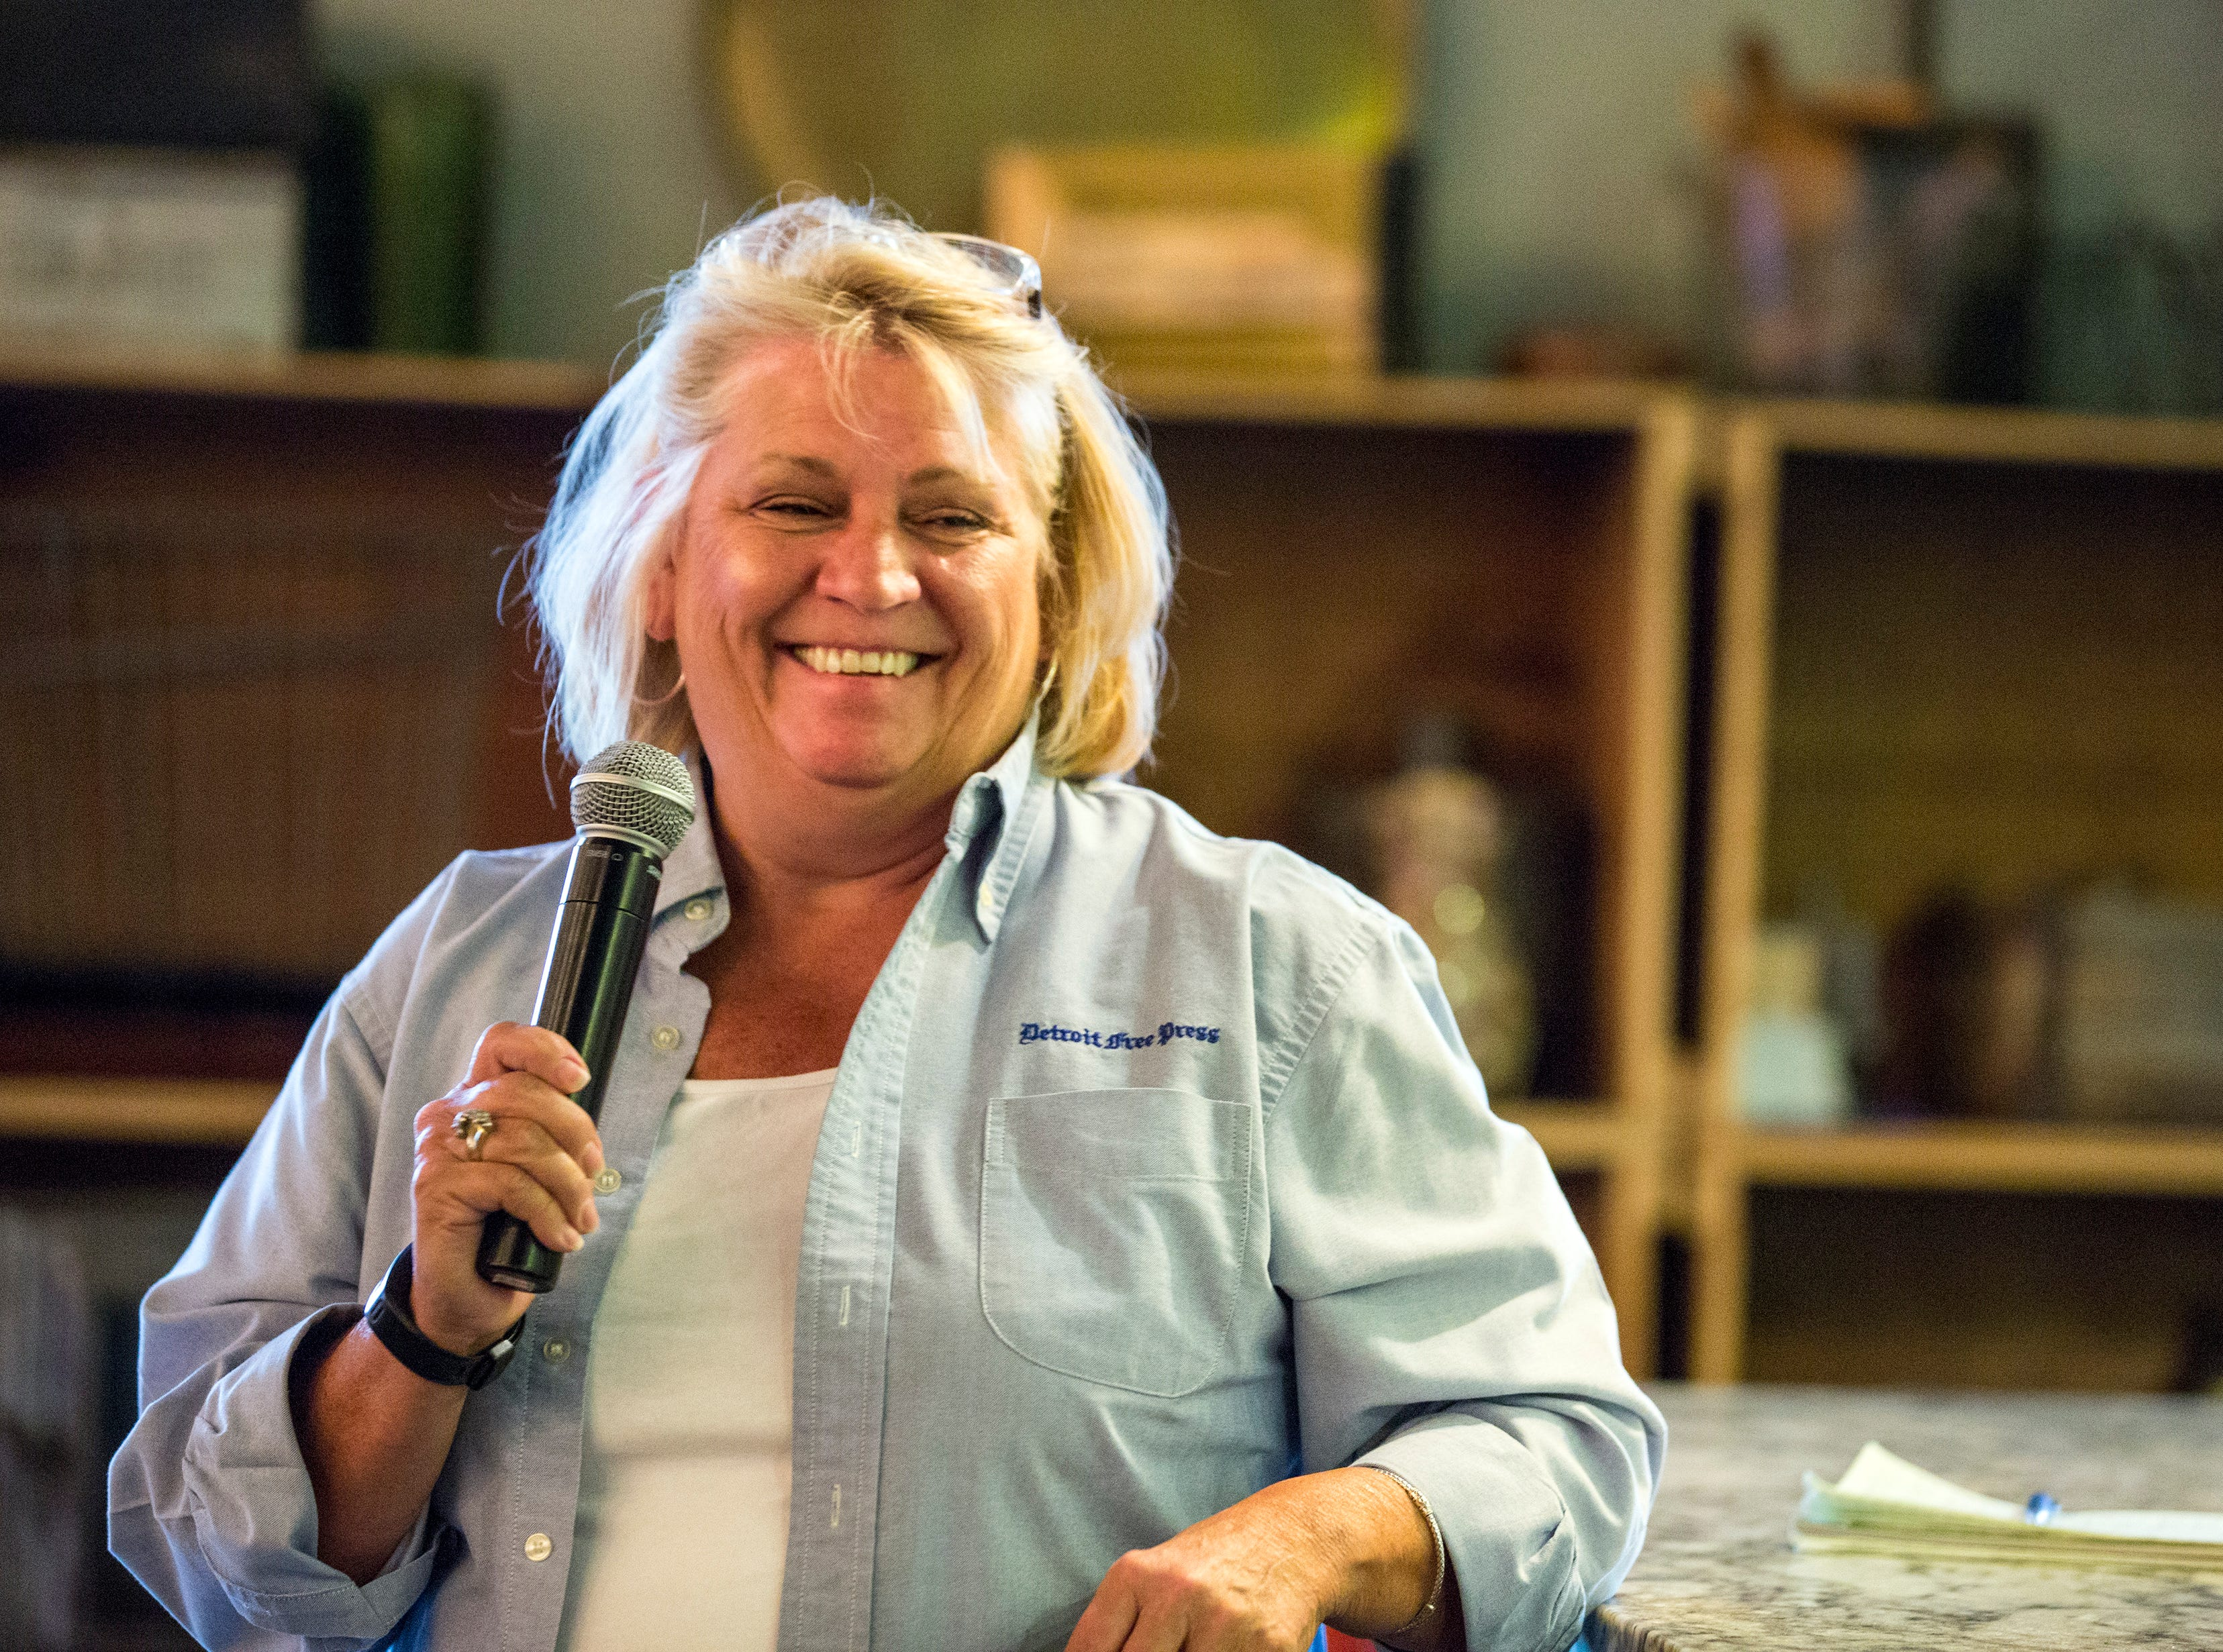 Detroit Free Press Reporter Sue Selasky hosts the sold-out Whisked event at the Great Lakes Culinary Center in Southfield, Mich., Sunday, Nov. 18, 2018.